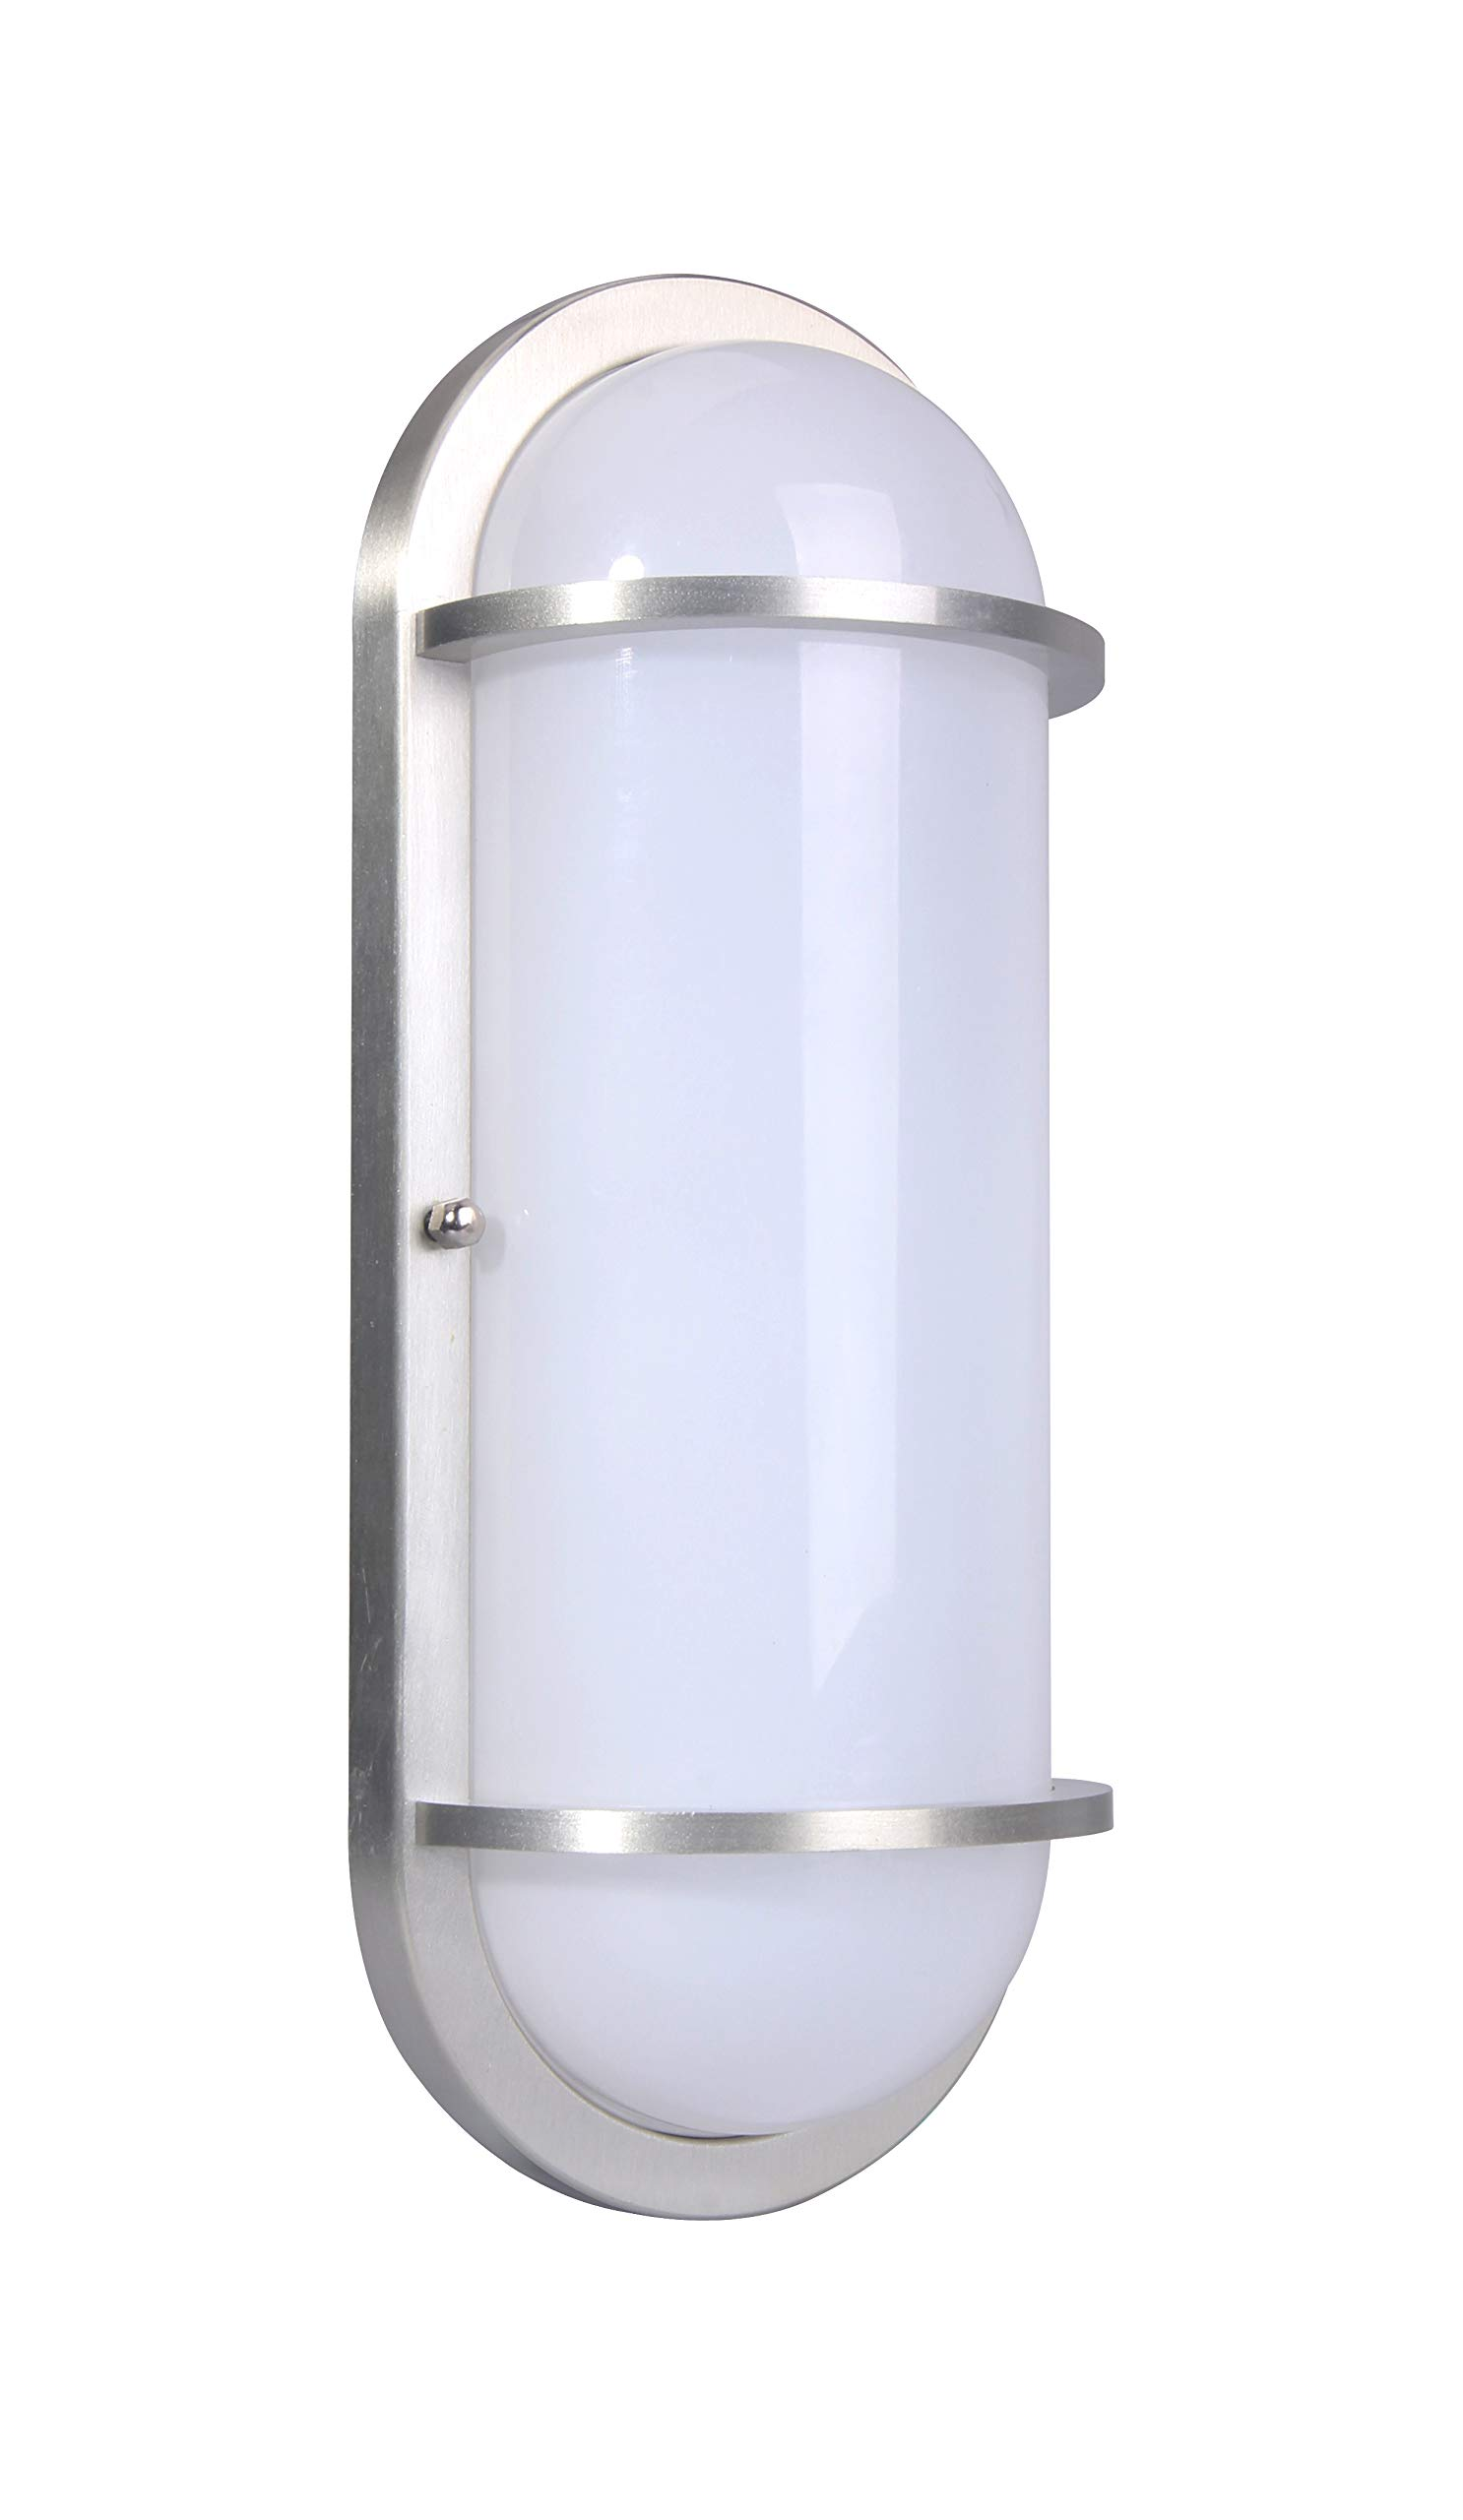 LIT-PaTH Outdoor LED Bulkhead Light Worked as Wall Lantern Wall Sconce or Flush Mount Ceiling Light, 12W Replace 100W, 1000 Lumen, 5000K Daylight White, Water-Proof, ETL and ES Qualified